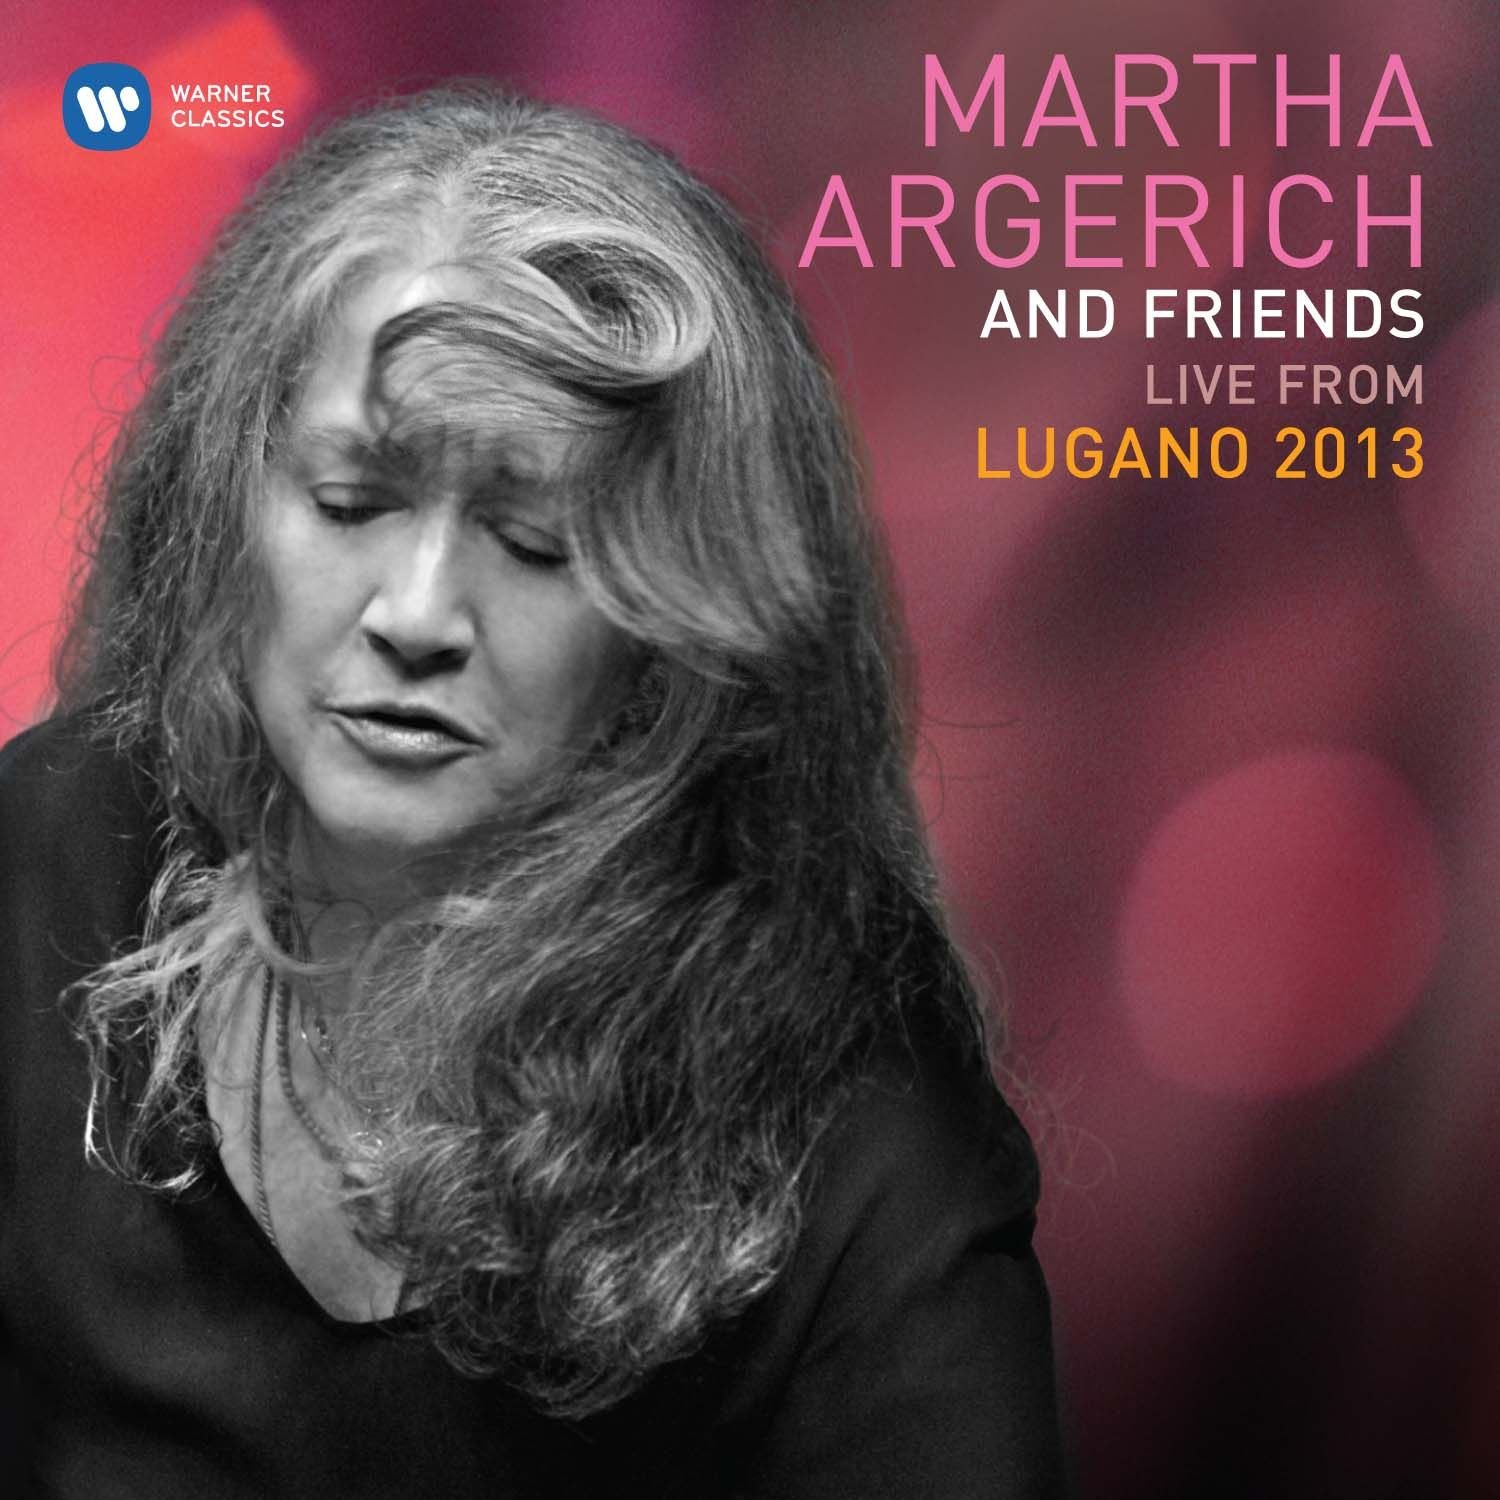 Martha Argerich and Friends Live at the Lugano Festival 2013